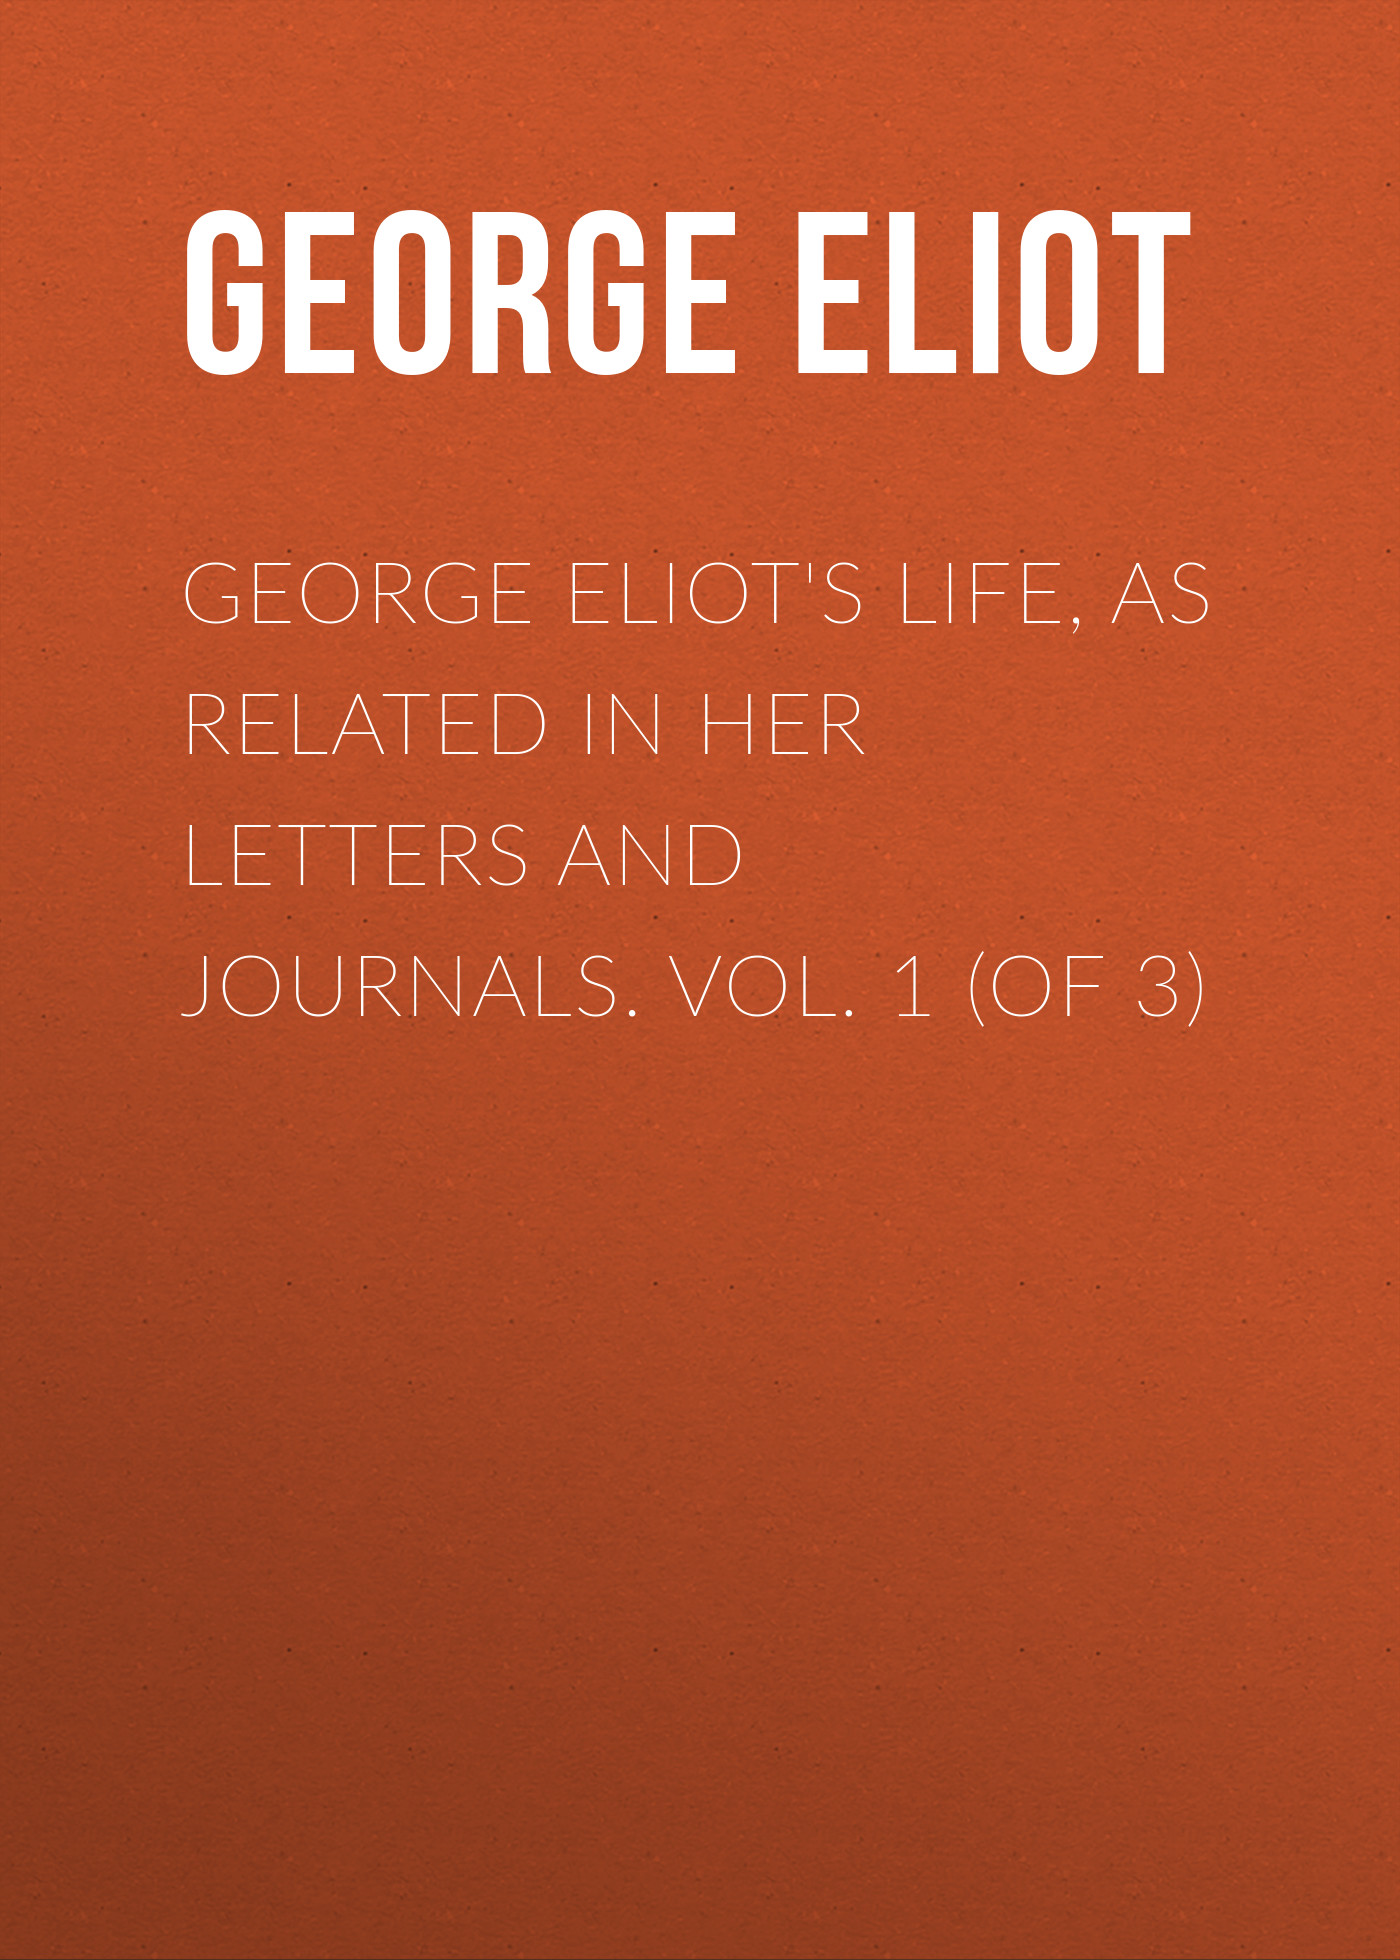 Джордж Элиот George Eliot's Life, as Related in Her Letters and Journals. Vol. 1 (of 3) джордж торогуд the destroyers george thorogood